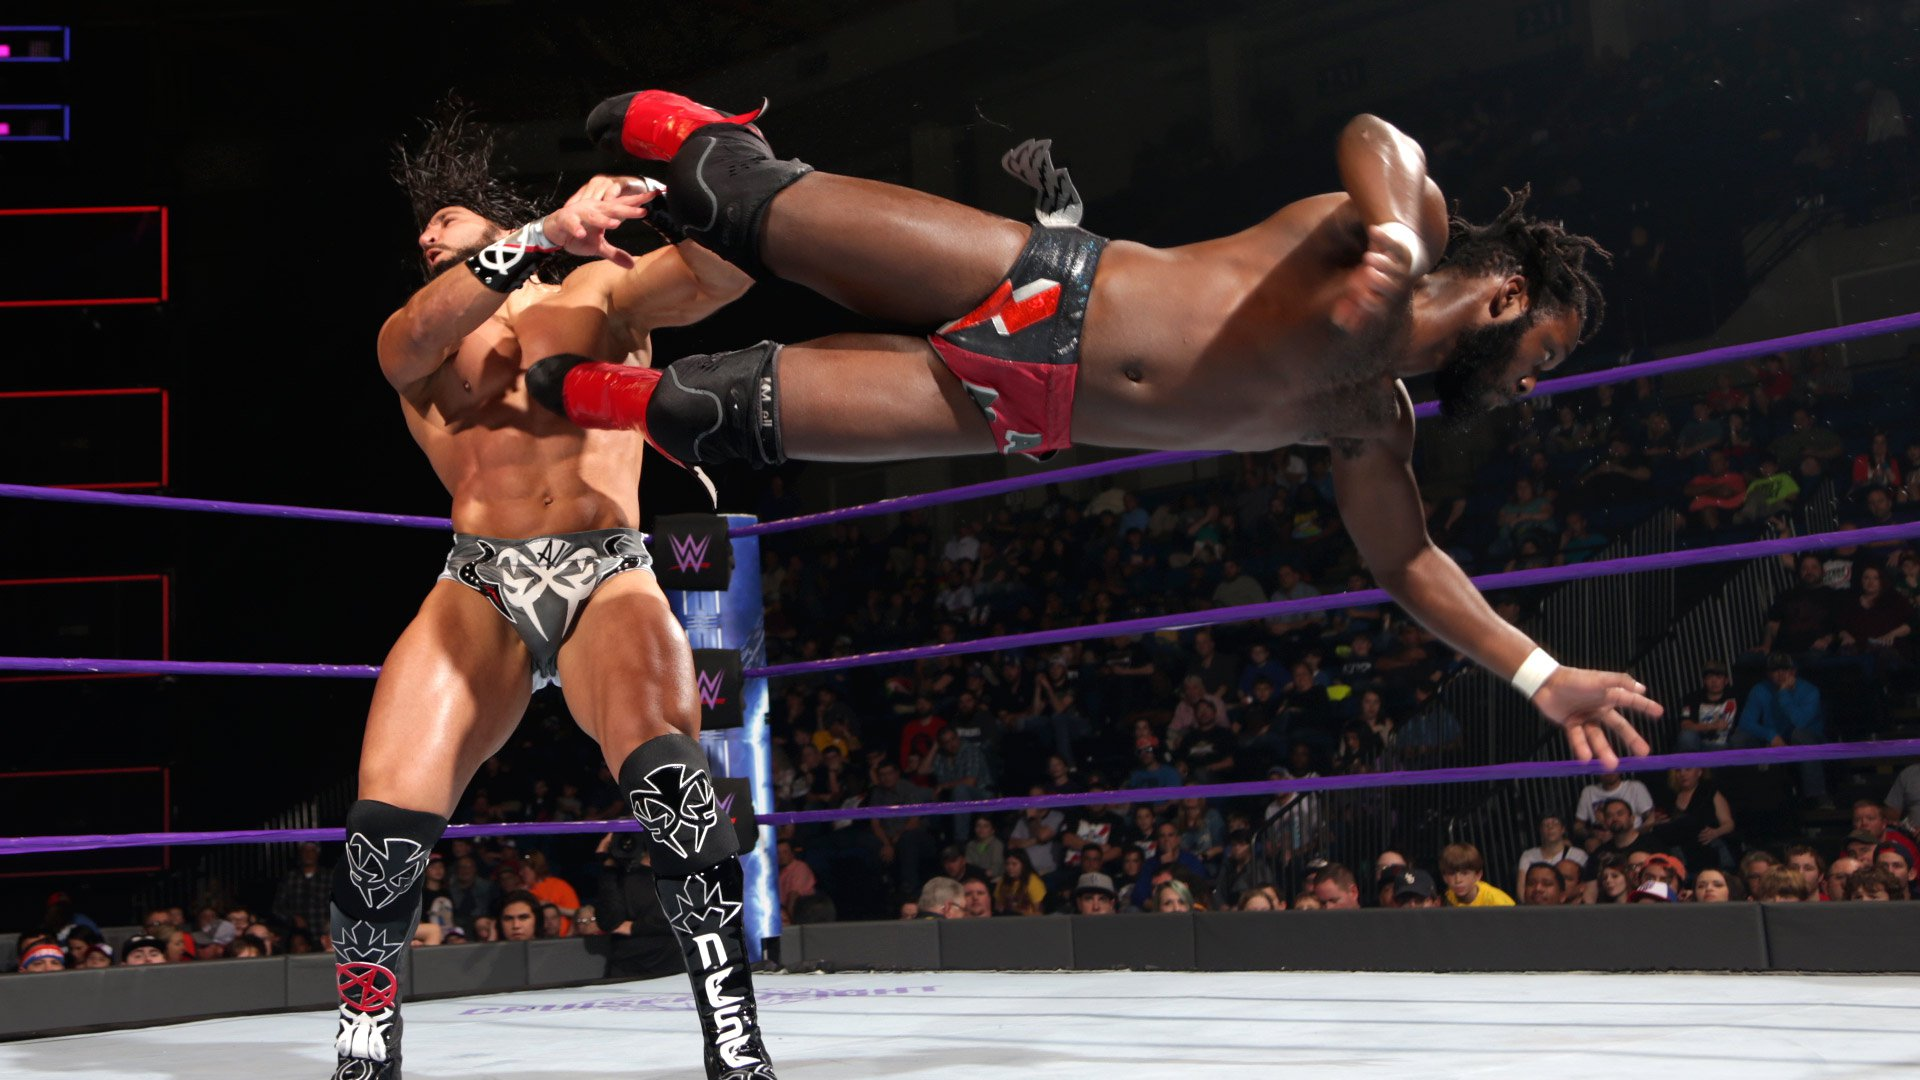 Rich Swann vs. Tony Nese: WWE 205 Live, 10 jan. 2017